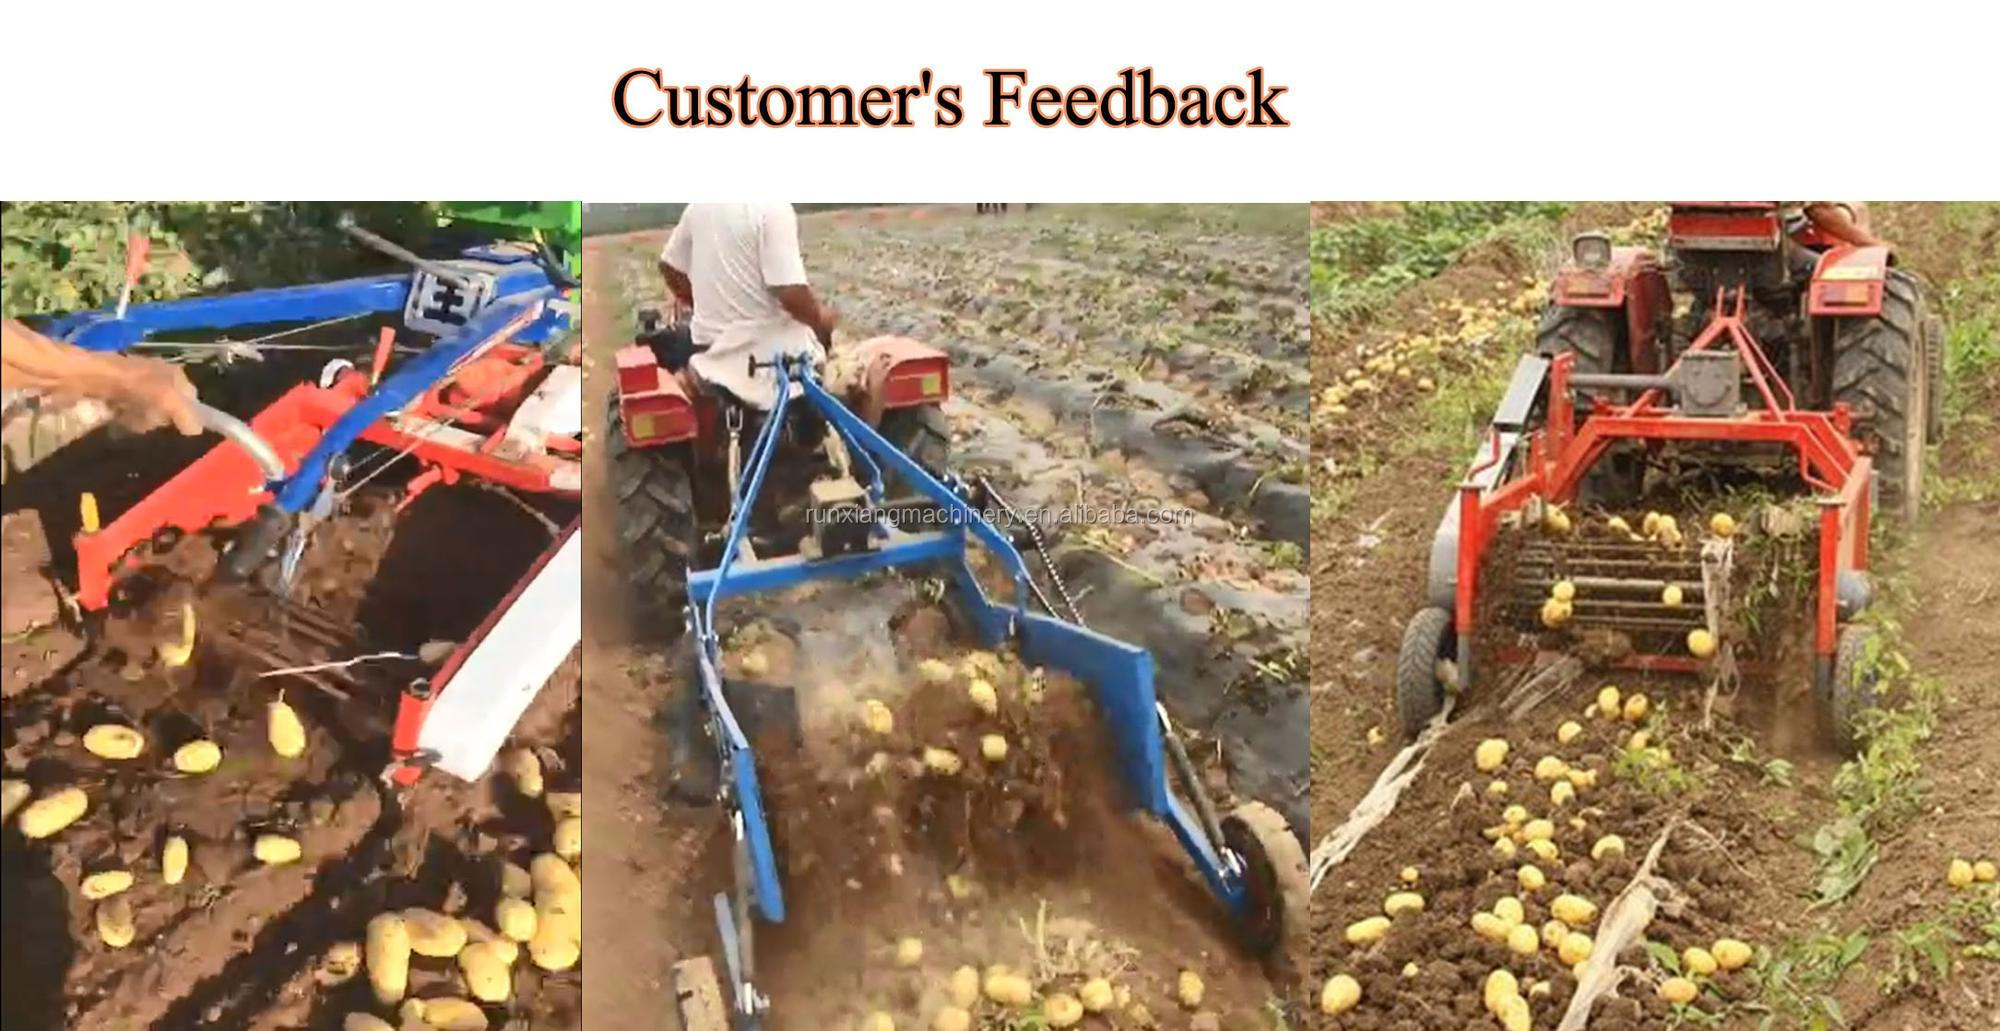 Craigslist Potato Harvester Chain Belts Machine - Buy Reekie Potato  Harvester,Second Hand Potato Equipment,Root Crops Harvester Potato Digger  Product